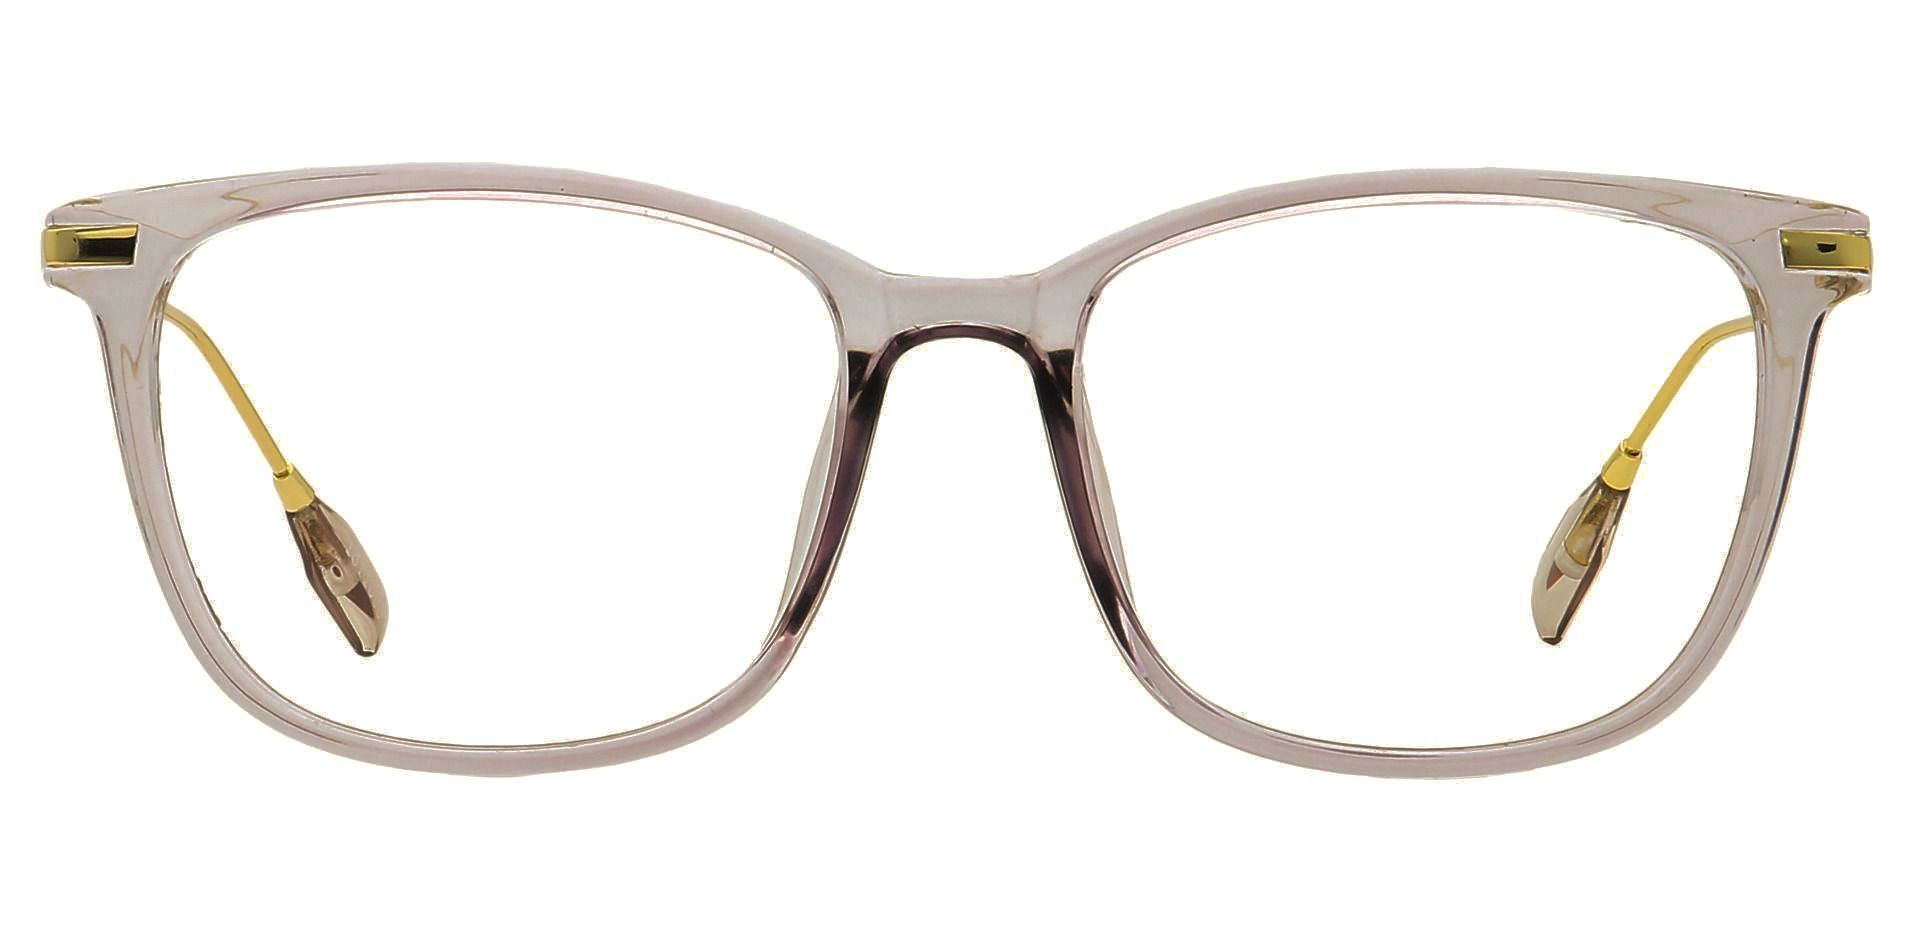 Katie Oval Prescription Glasses - The Frame Is Clear With Light Purple